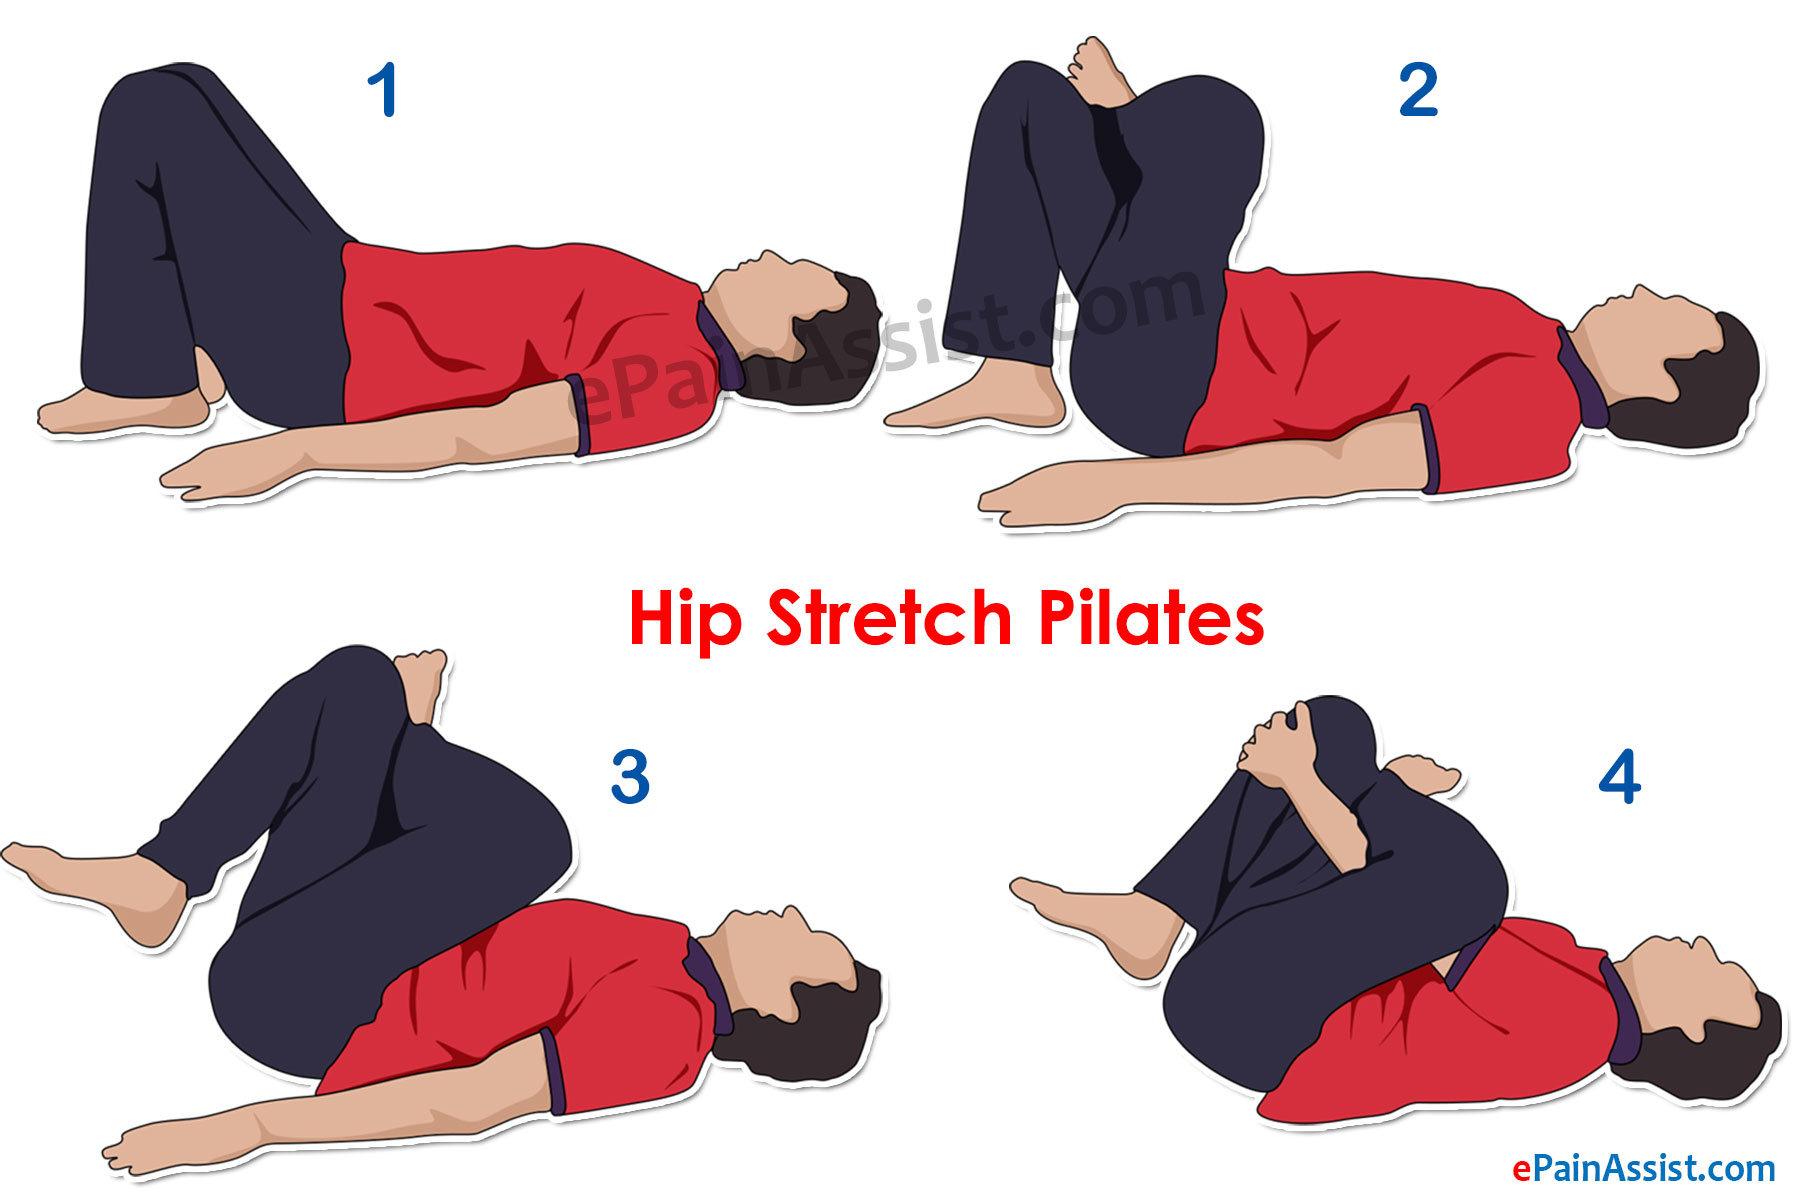 Hip Stretch Pilates